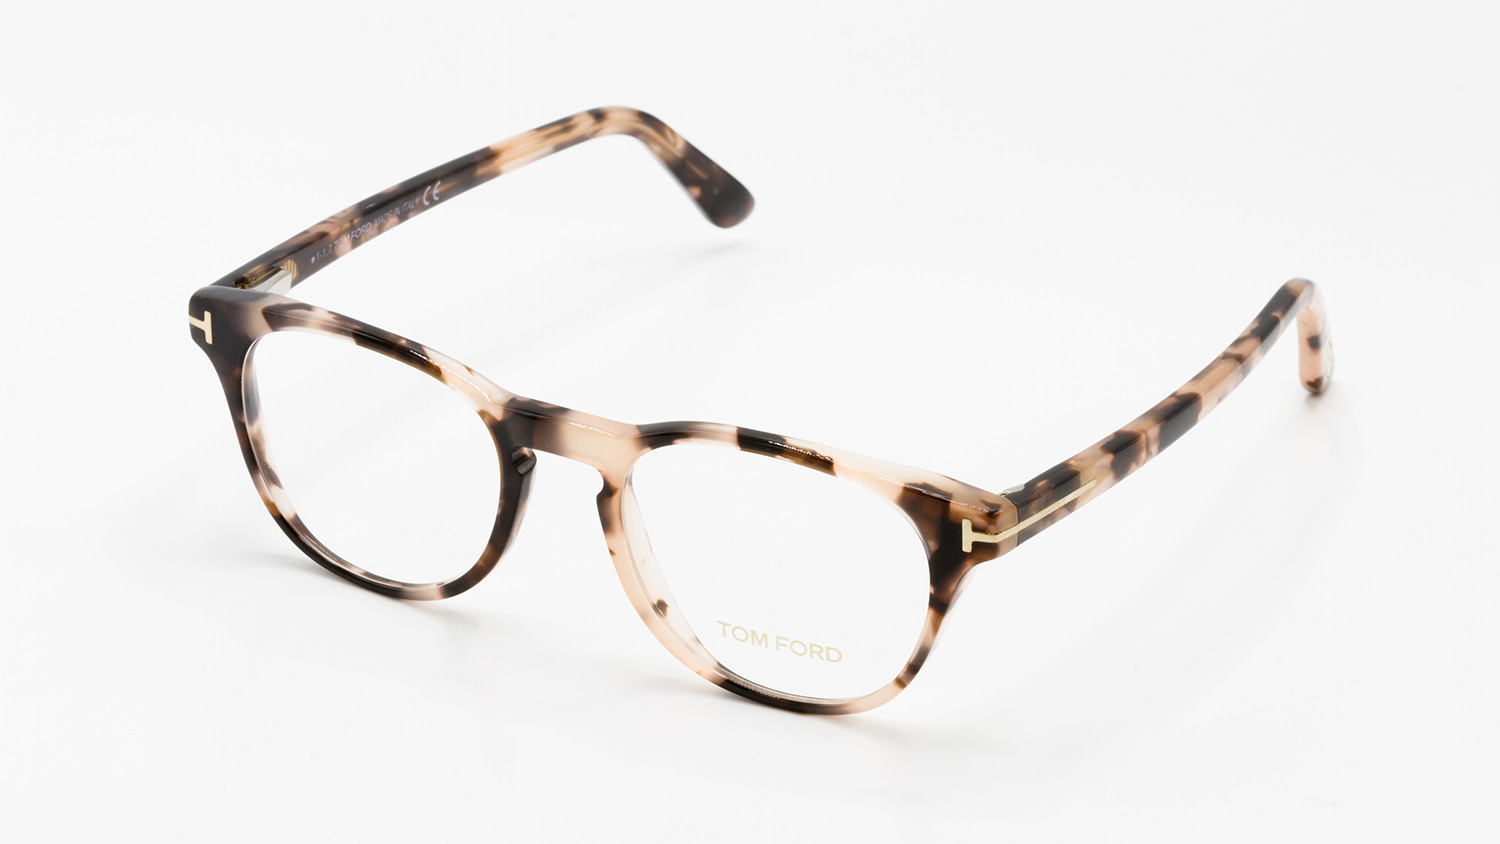 Tom Ford TF598